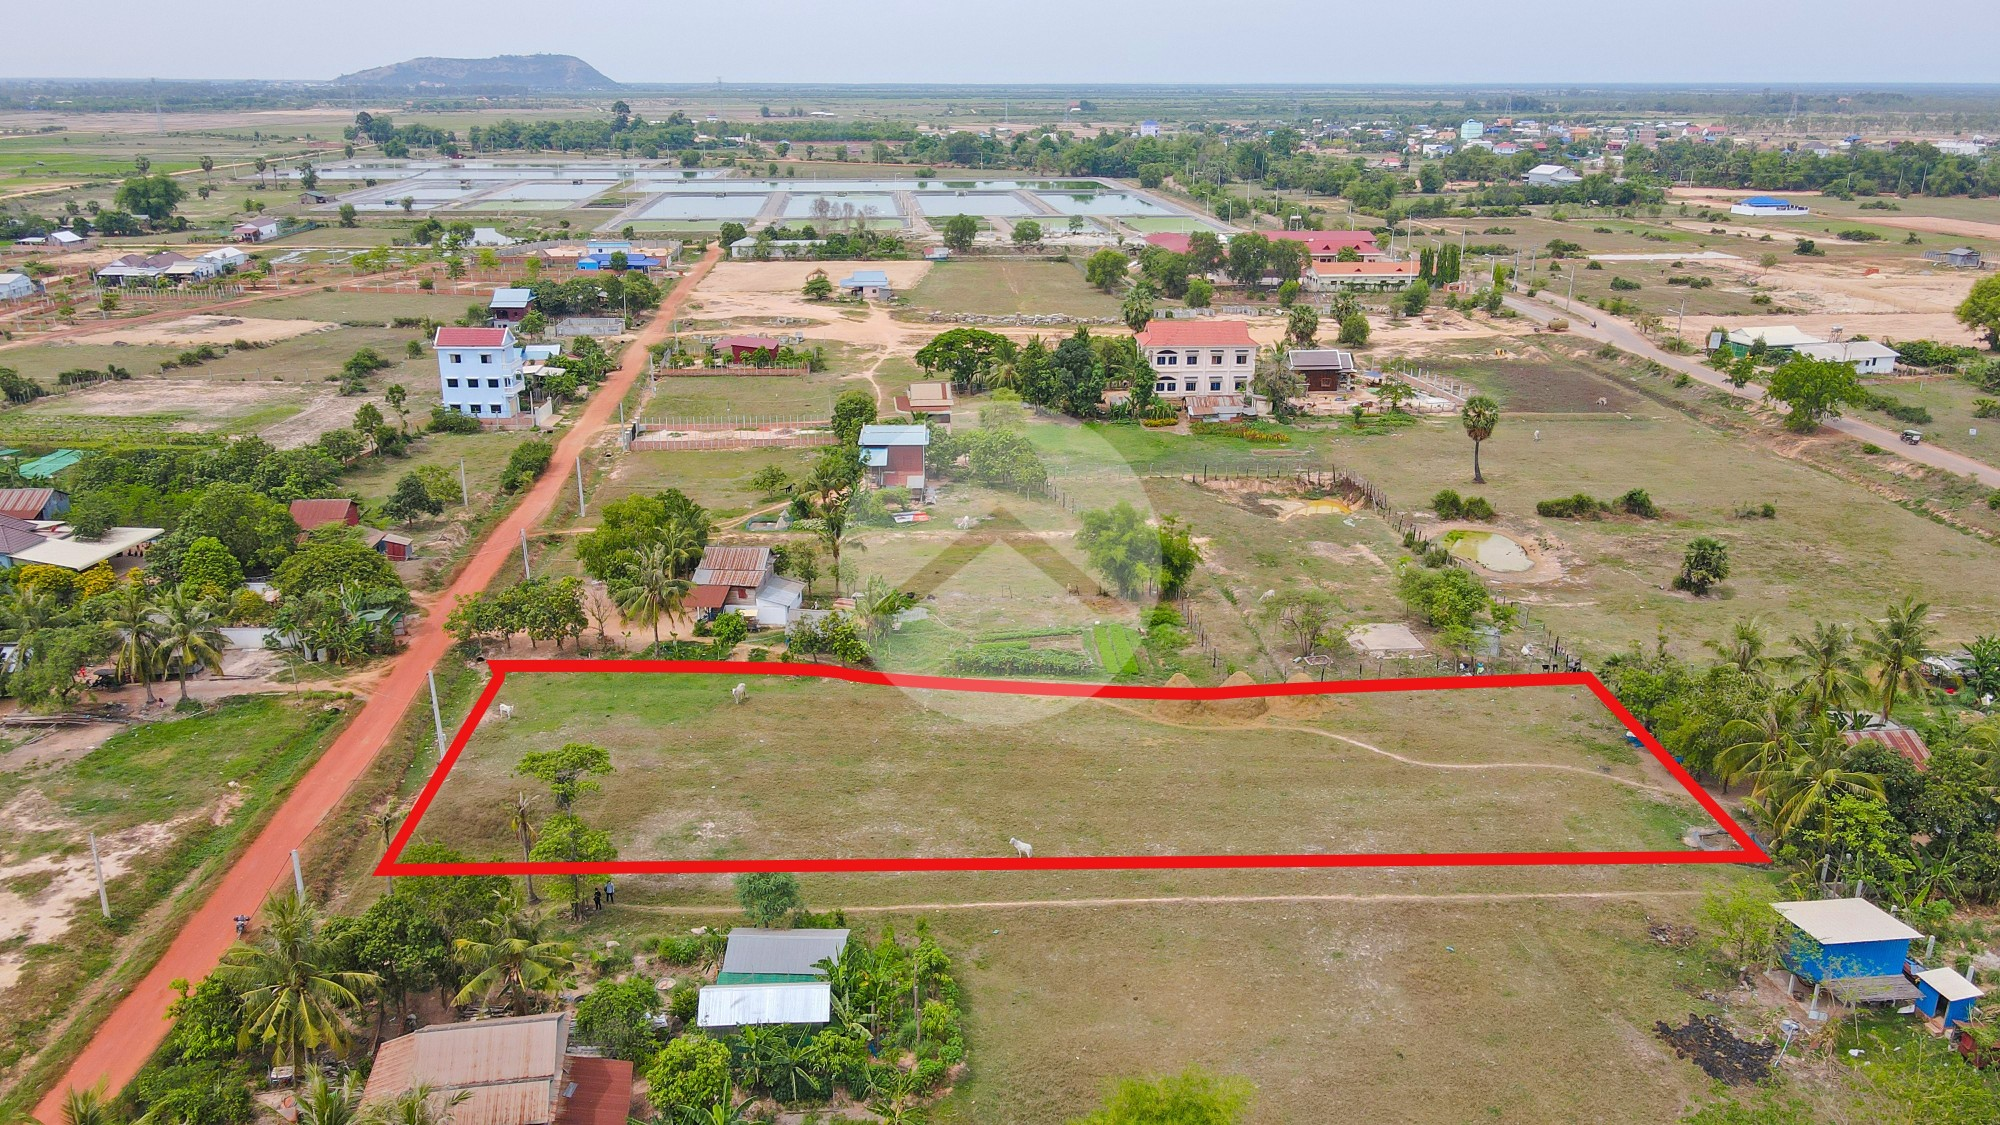 3582 Sqm Residential Land For Sale - Svay Dangkum, Siem Reap